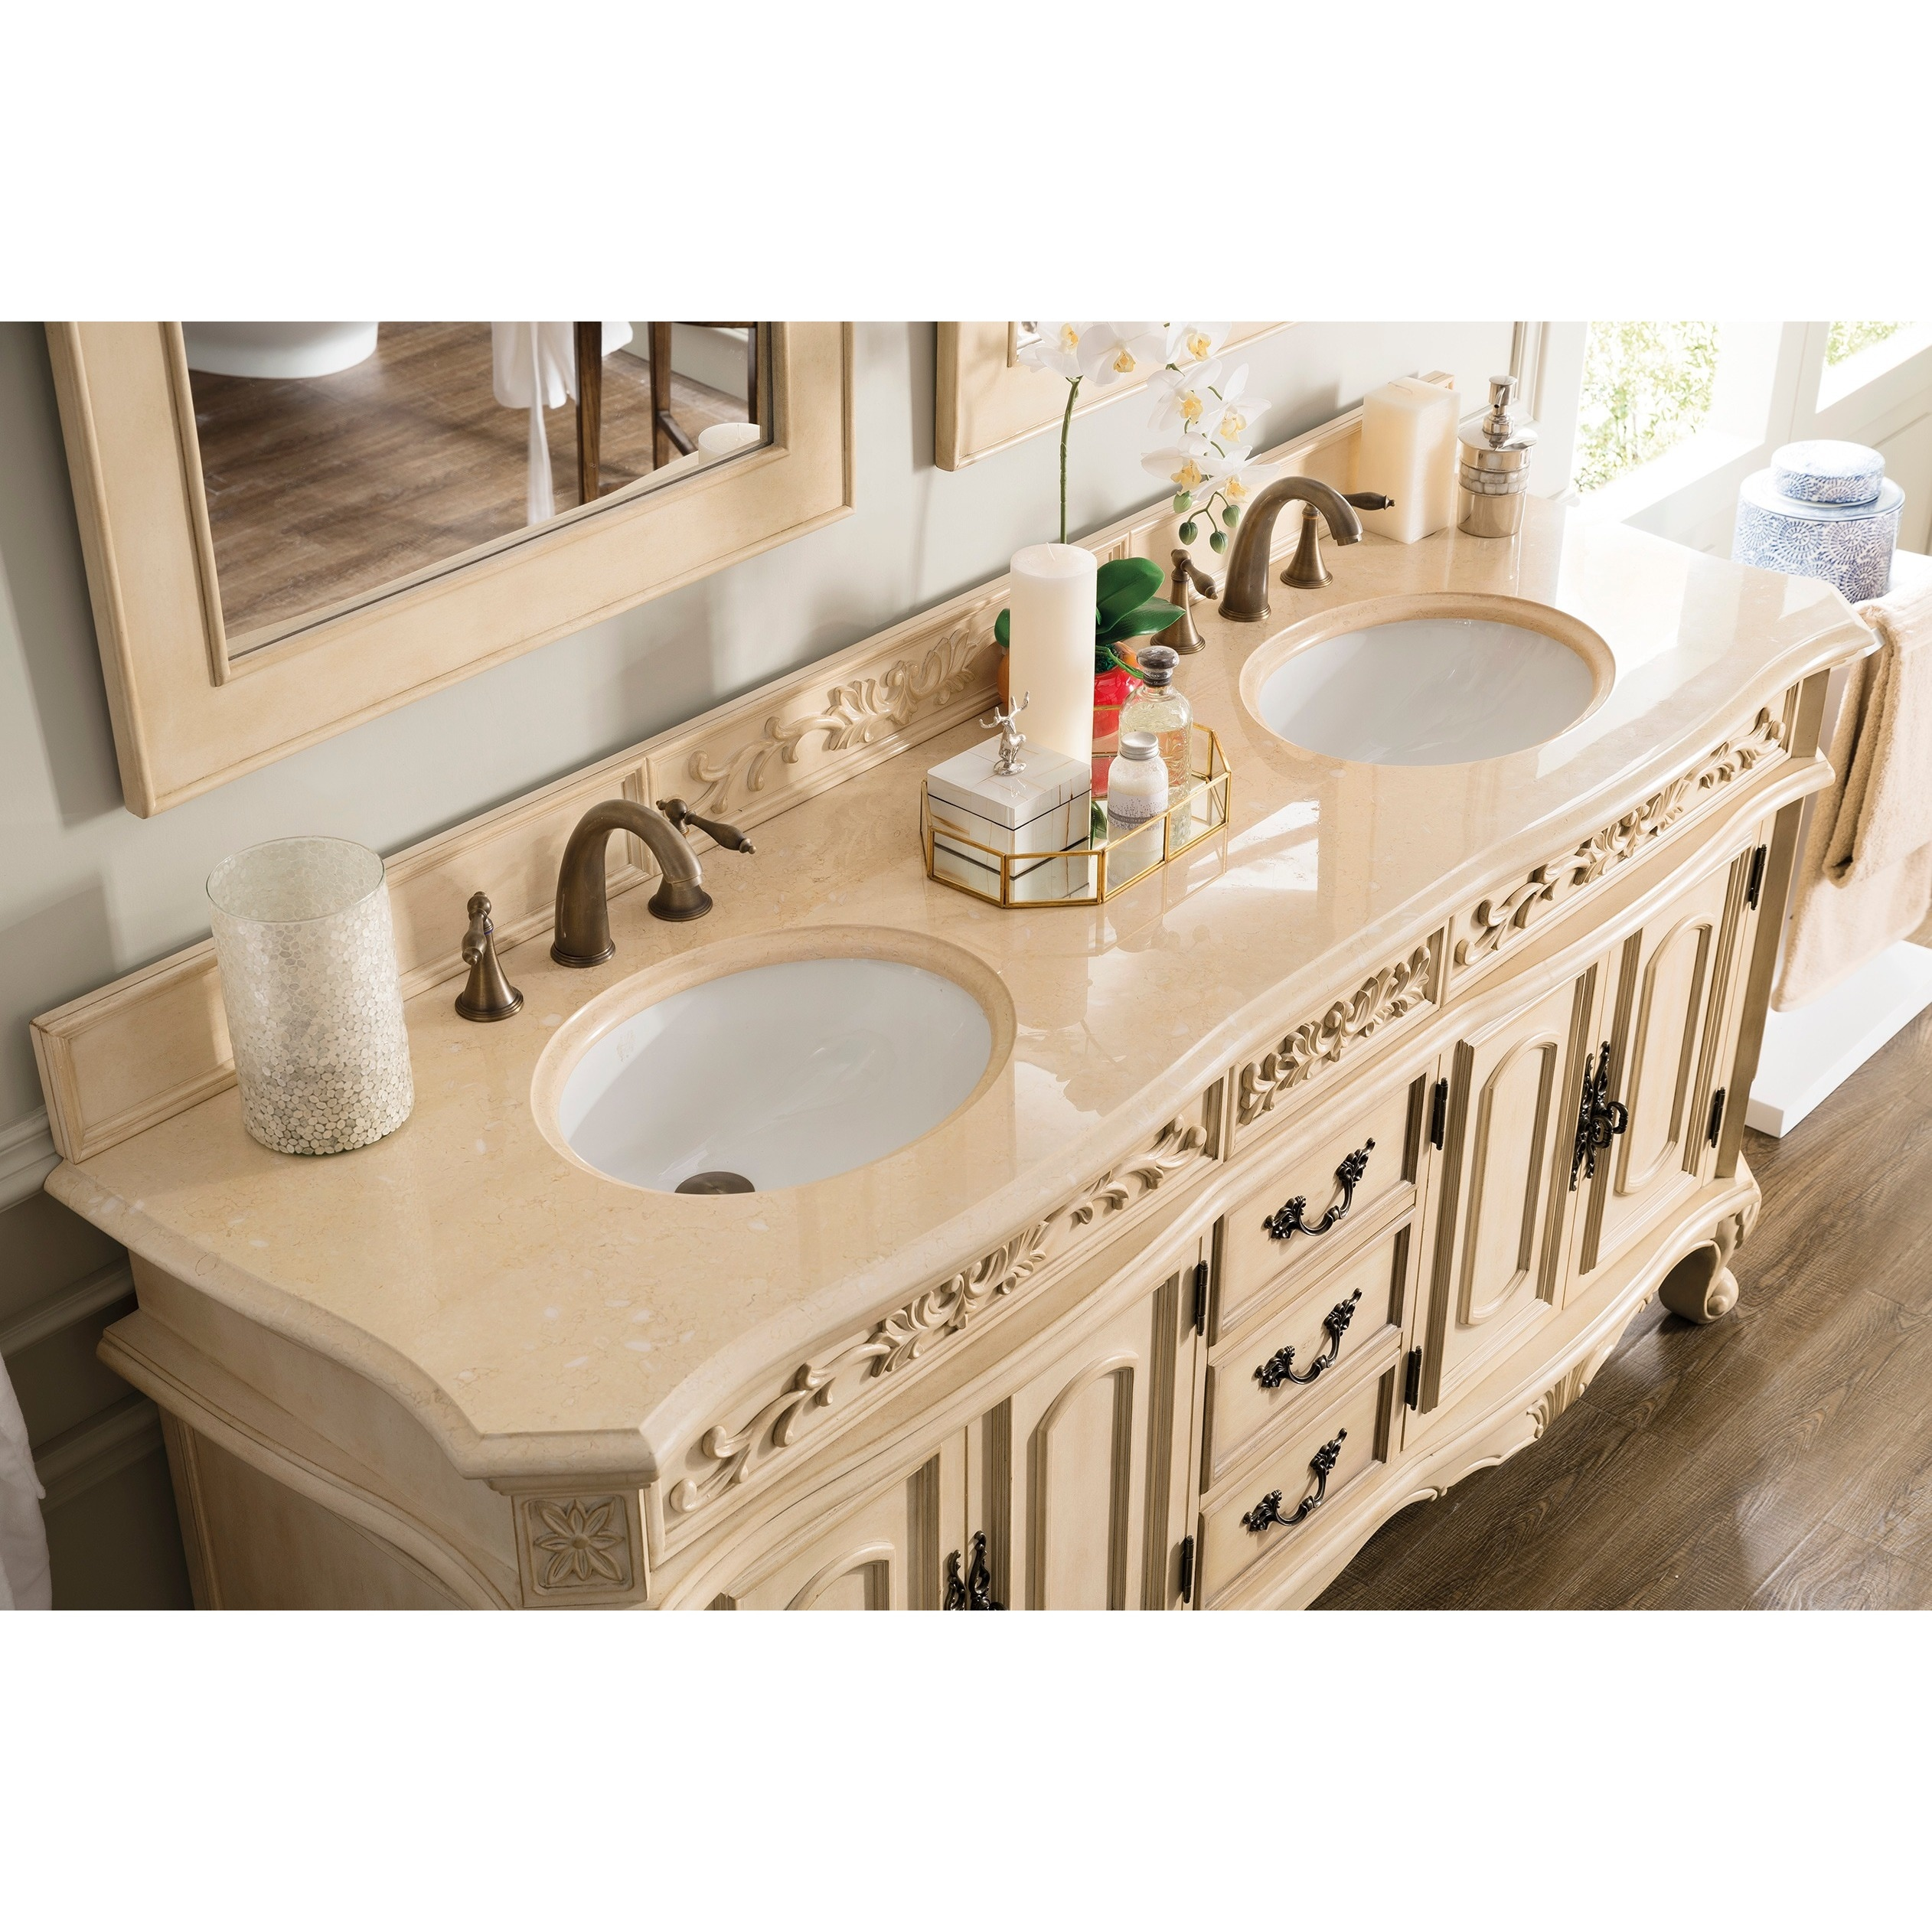 popular shop single insingle in and bathroom torino vanity james incredible martin fresca brittany of nsyd white vanities undermount trend sink